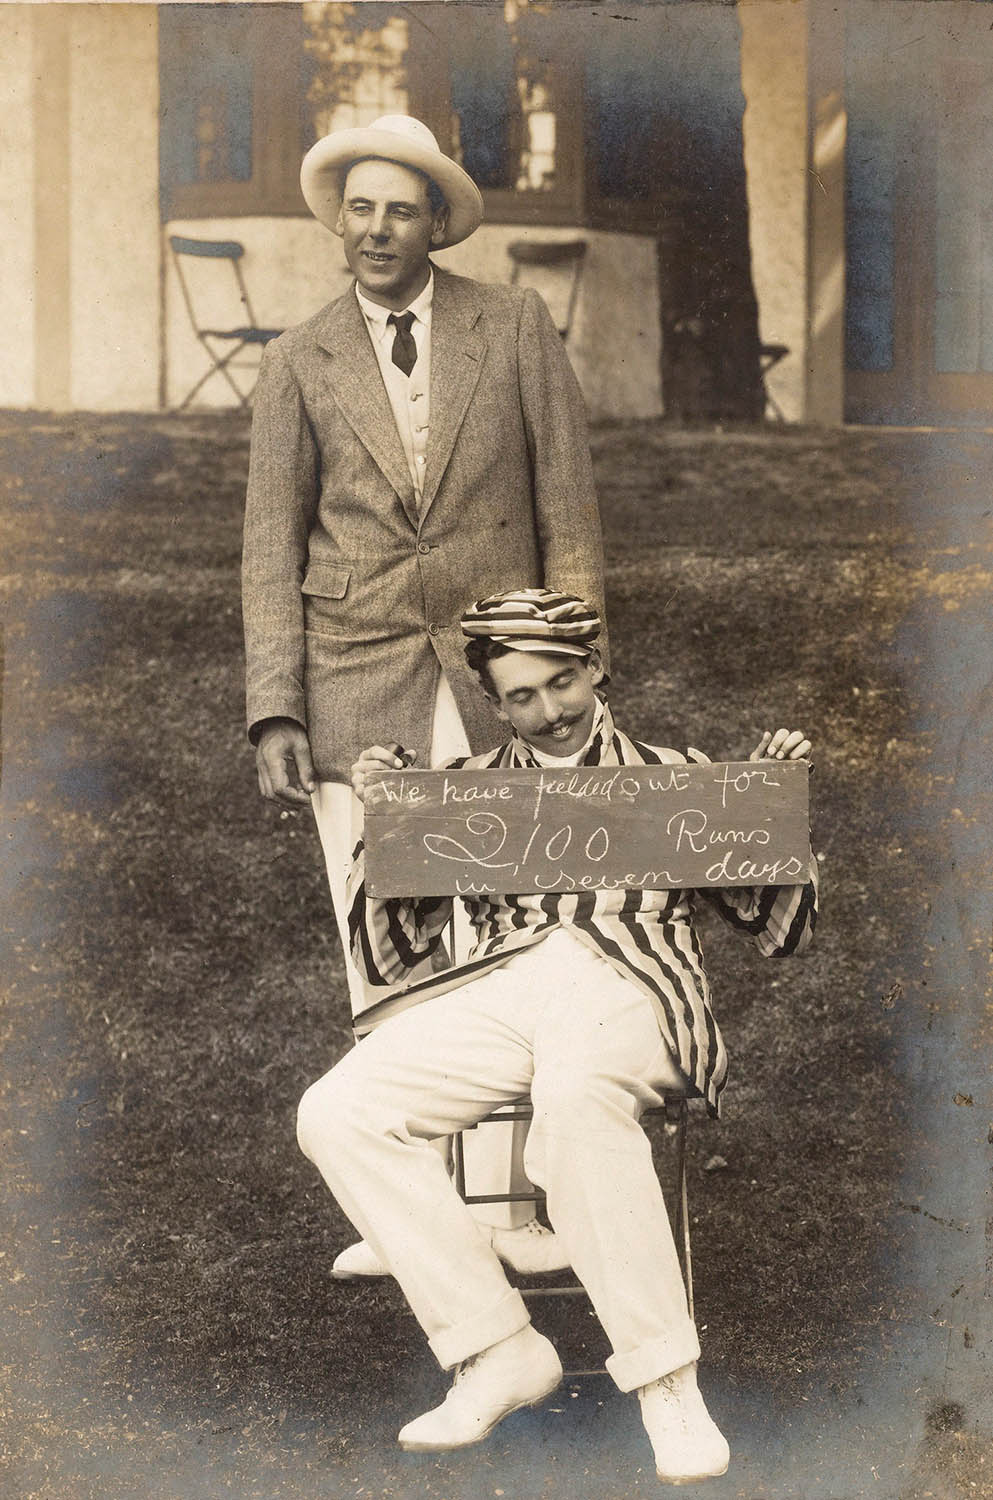 YGs Southern Tour 1908. Captain Bardwell exhausted from a week of cricket, with EG Tew - probably The Long Jigger -looking on.